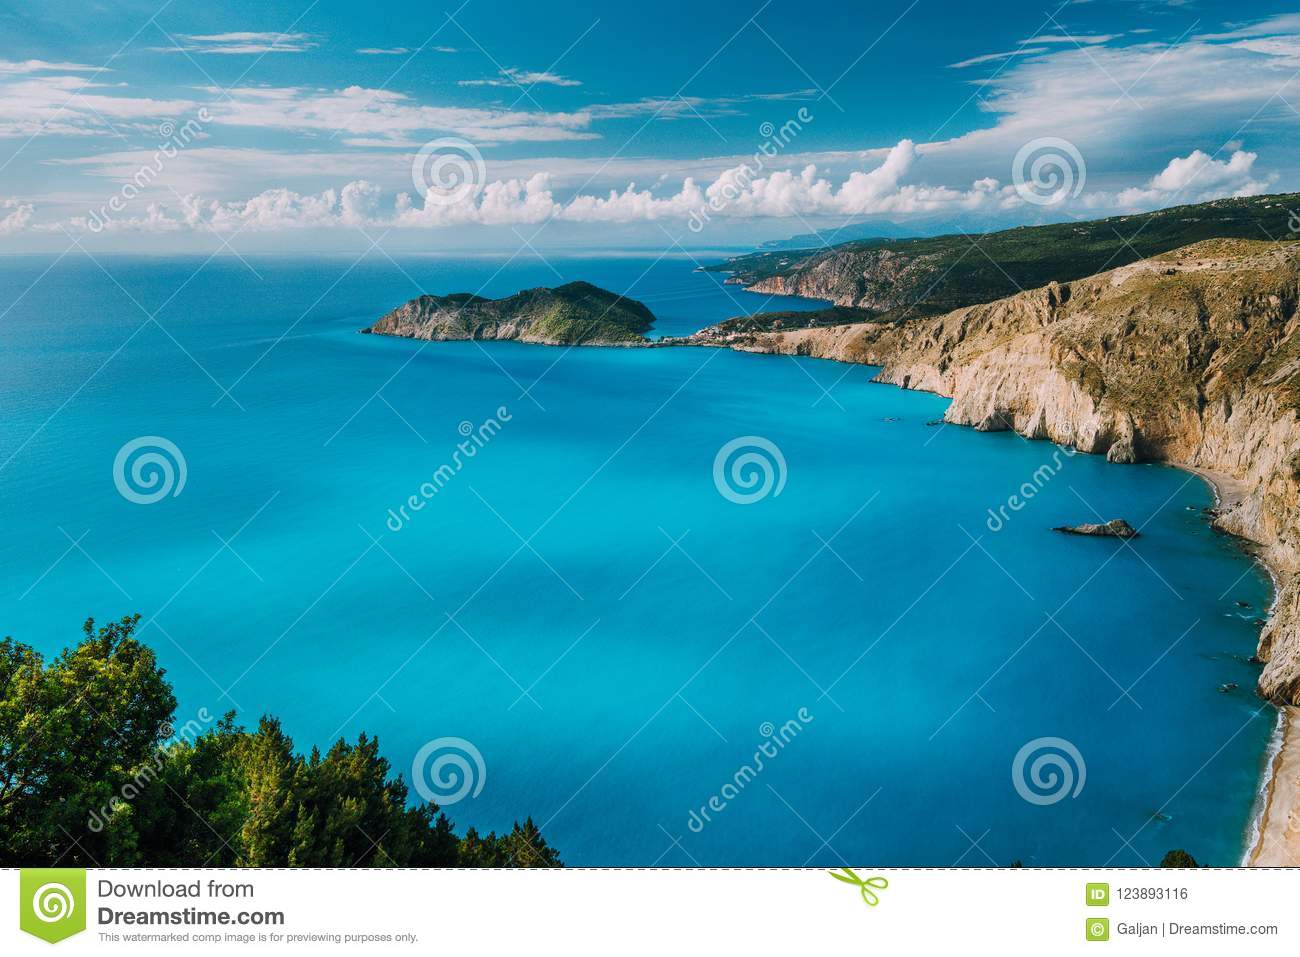 View of Kefalonia west coastline. Assos village town and Frourio peninsular. Beautiful milky blue bay with brown rocky